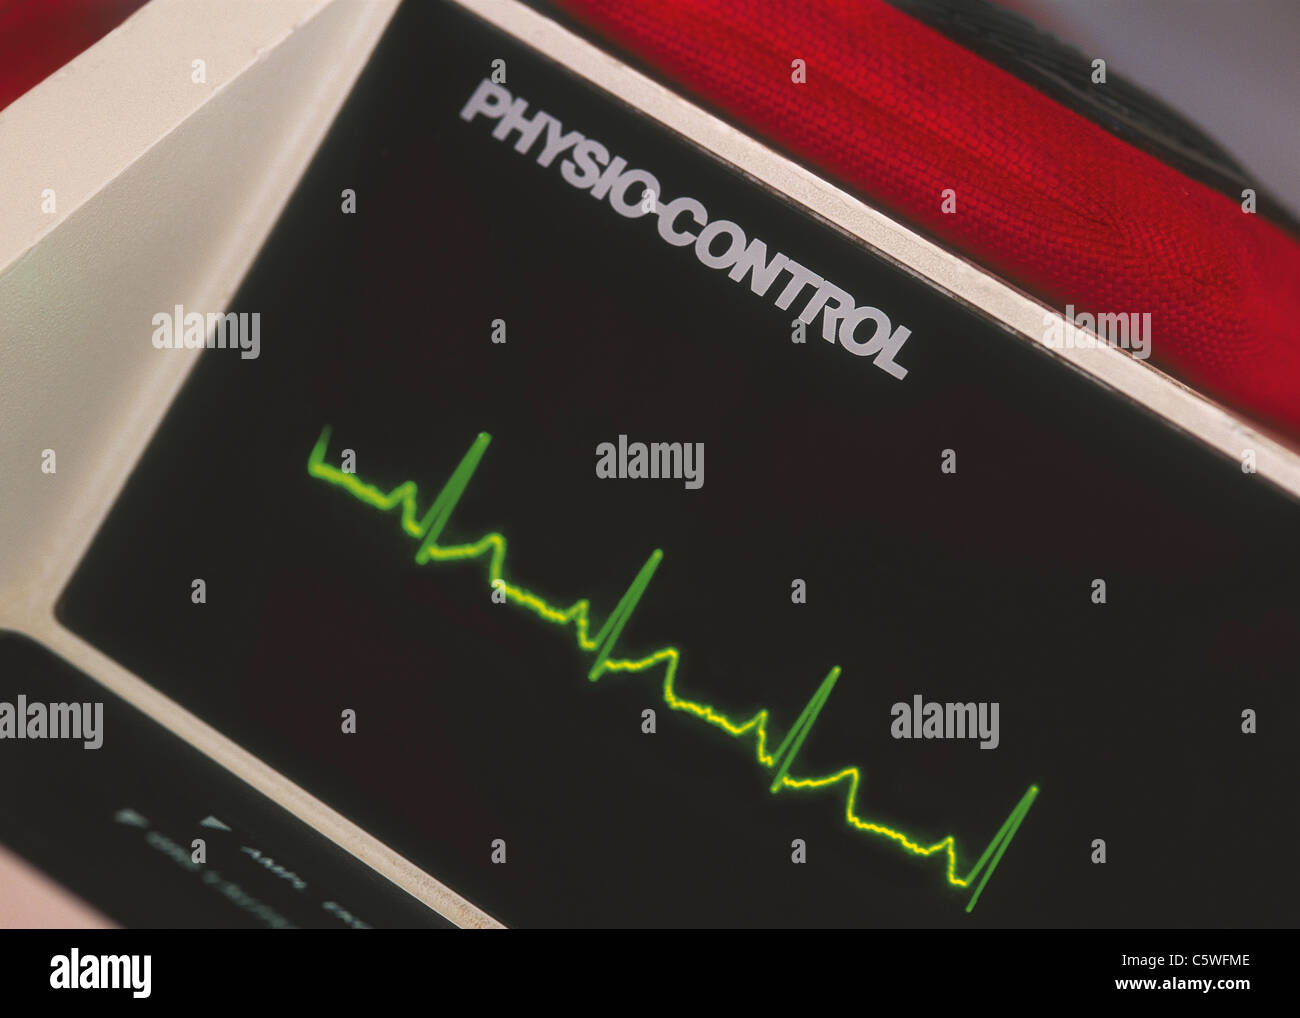 Pulse display on electrocardiogram - Stock Image